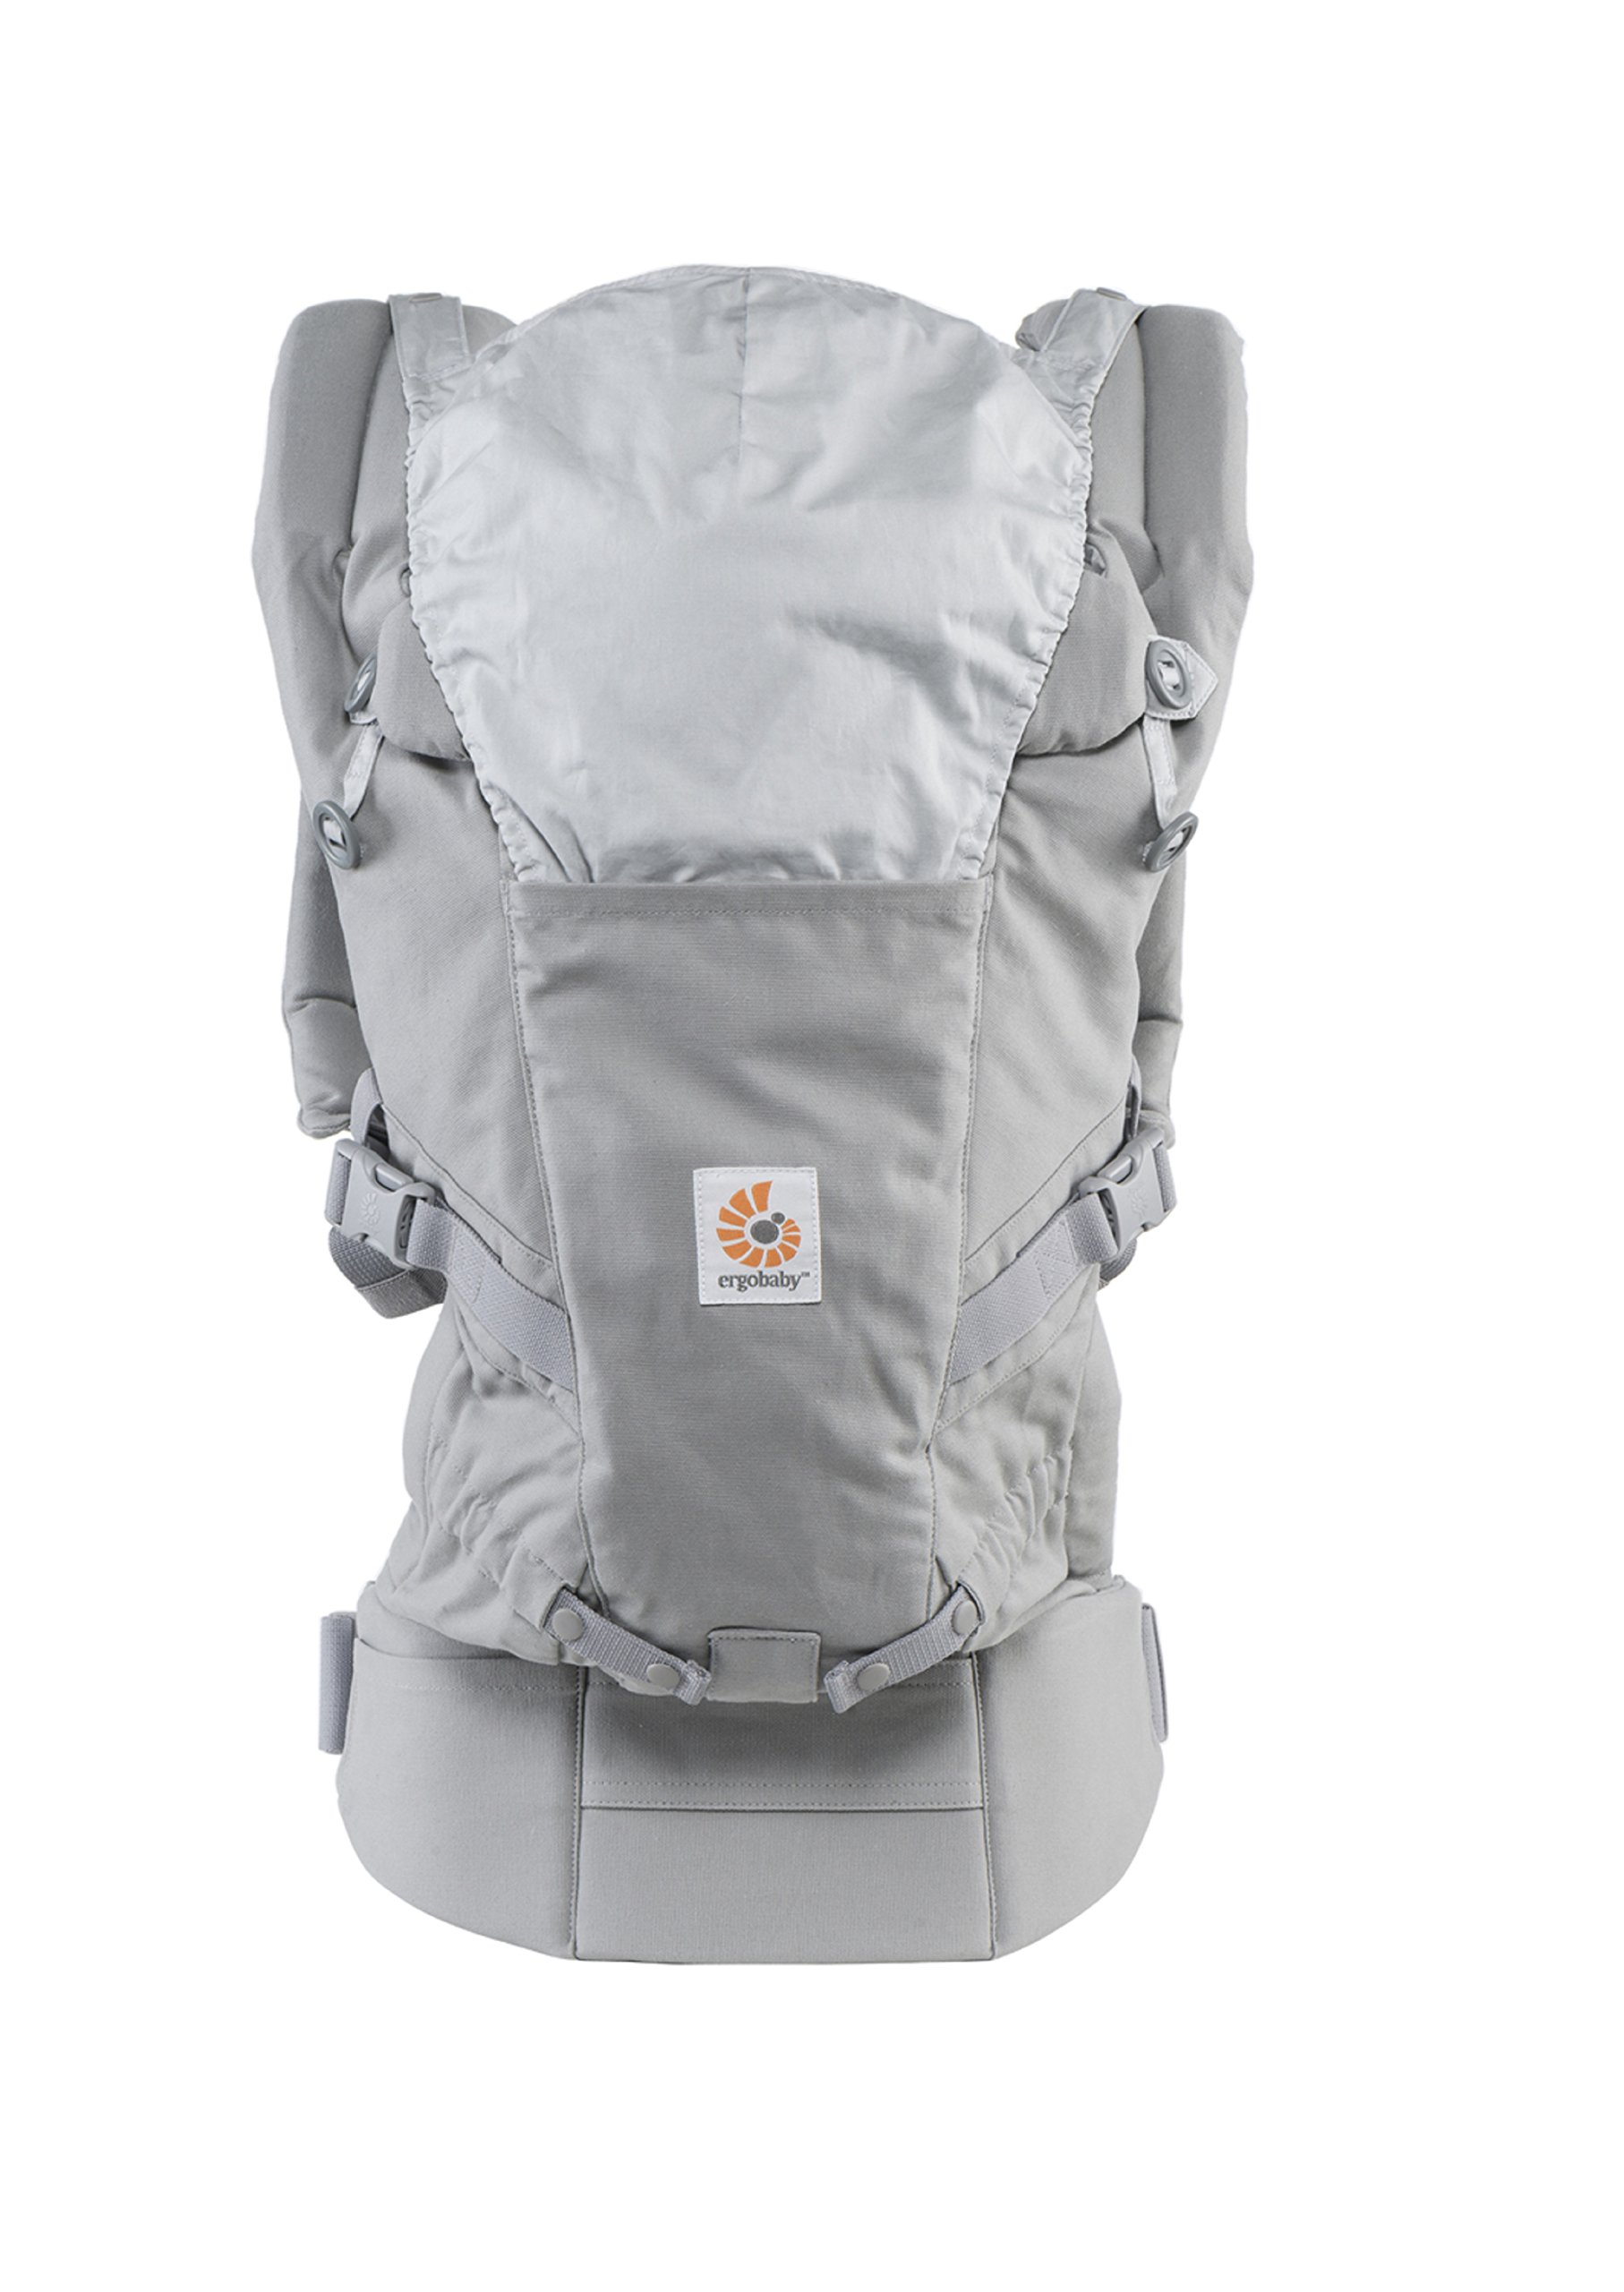 ErgoBaby Adapt Baby Carrier Grey Ergobaby Adapt to Every Baby Easy. Adjustable. Newborn to toddler. 7